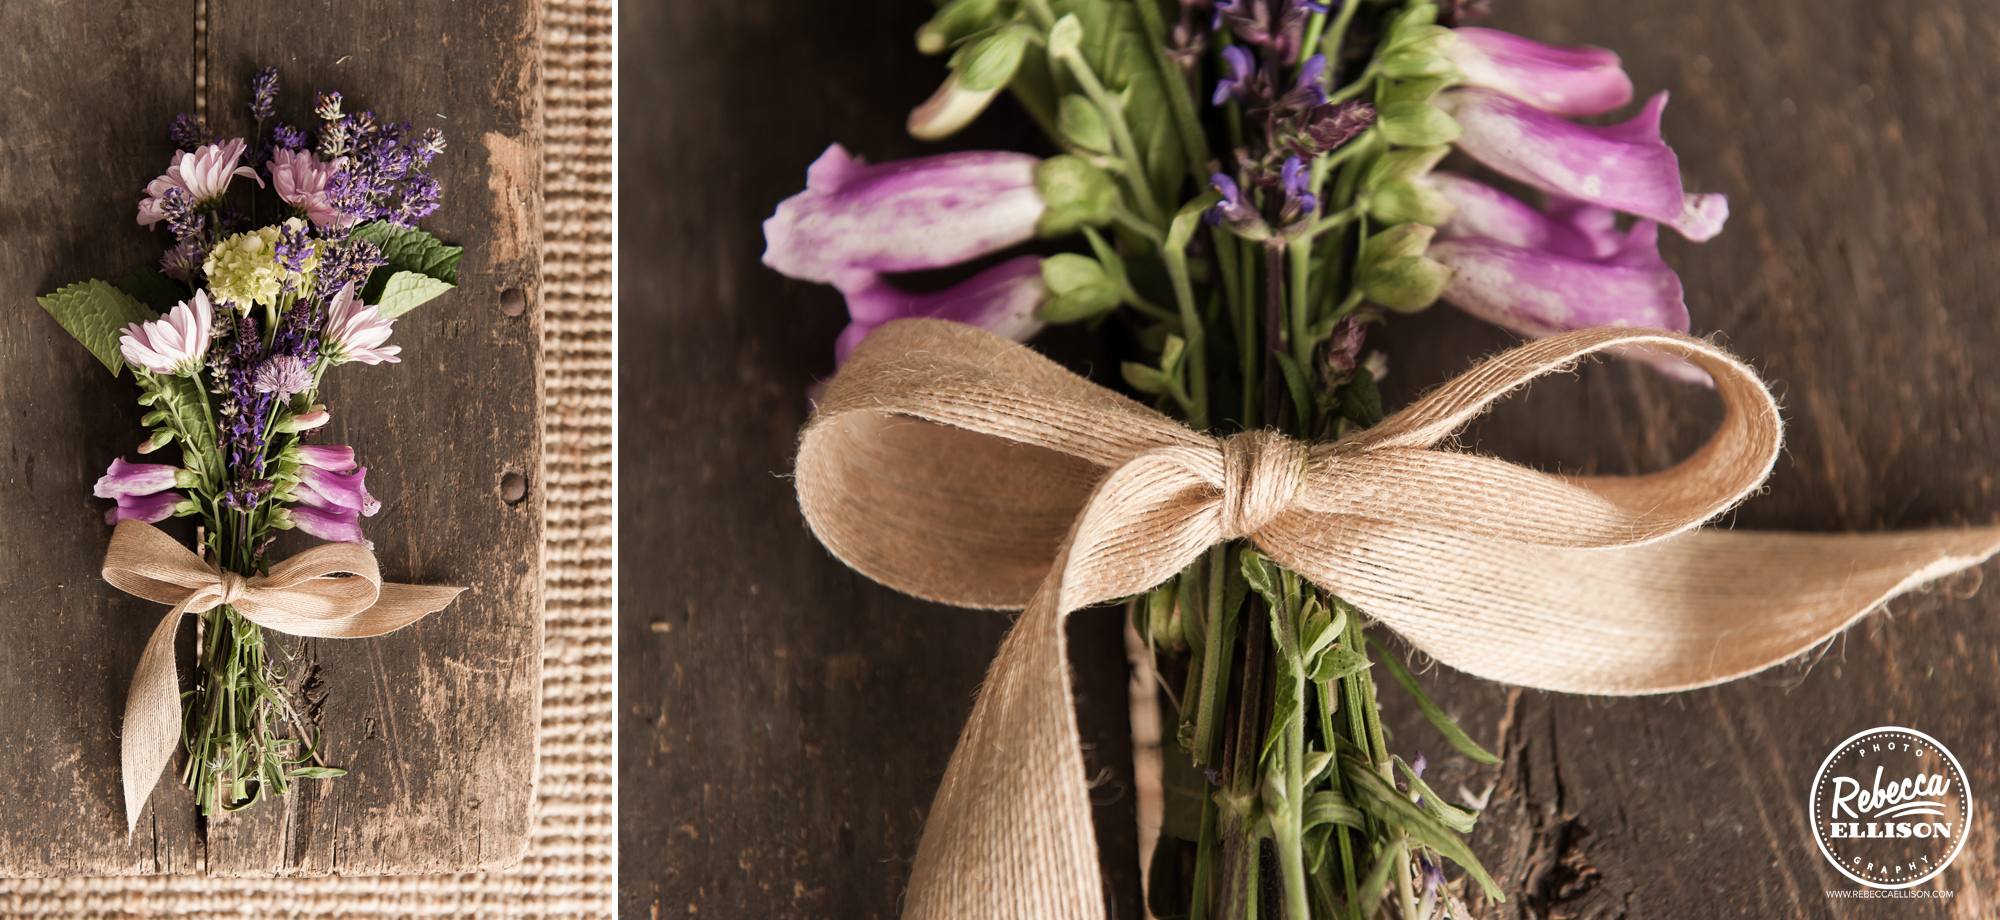 hot wedding trends for 2015 - farm to table, fresh picked flowers